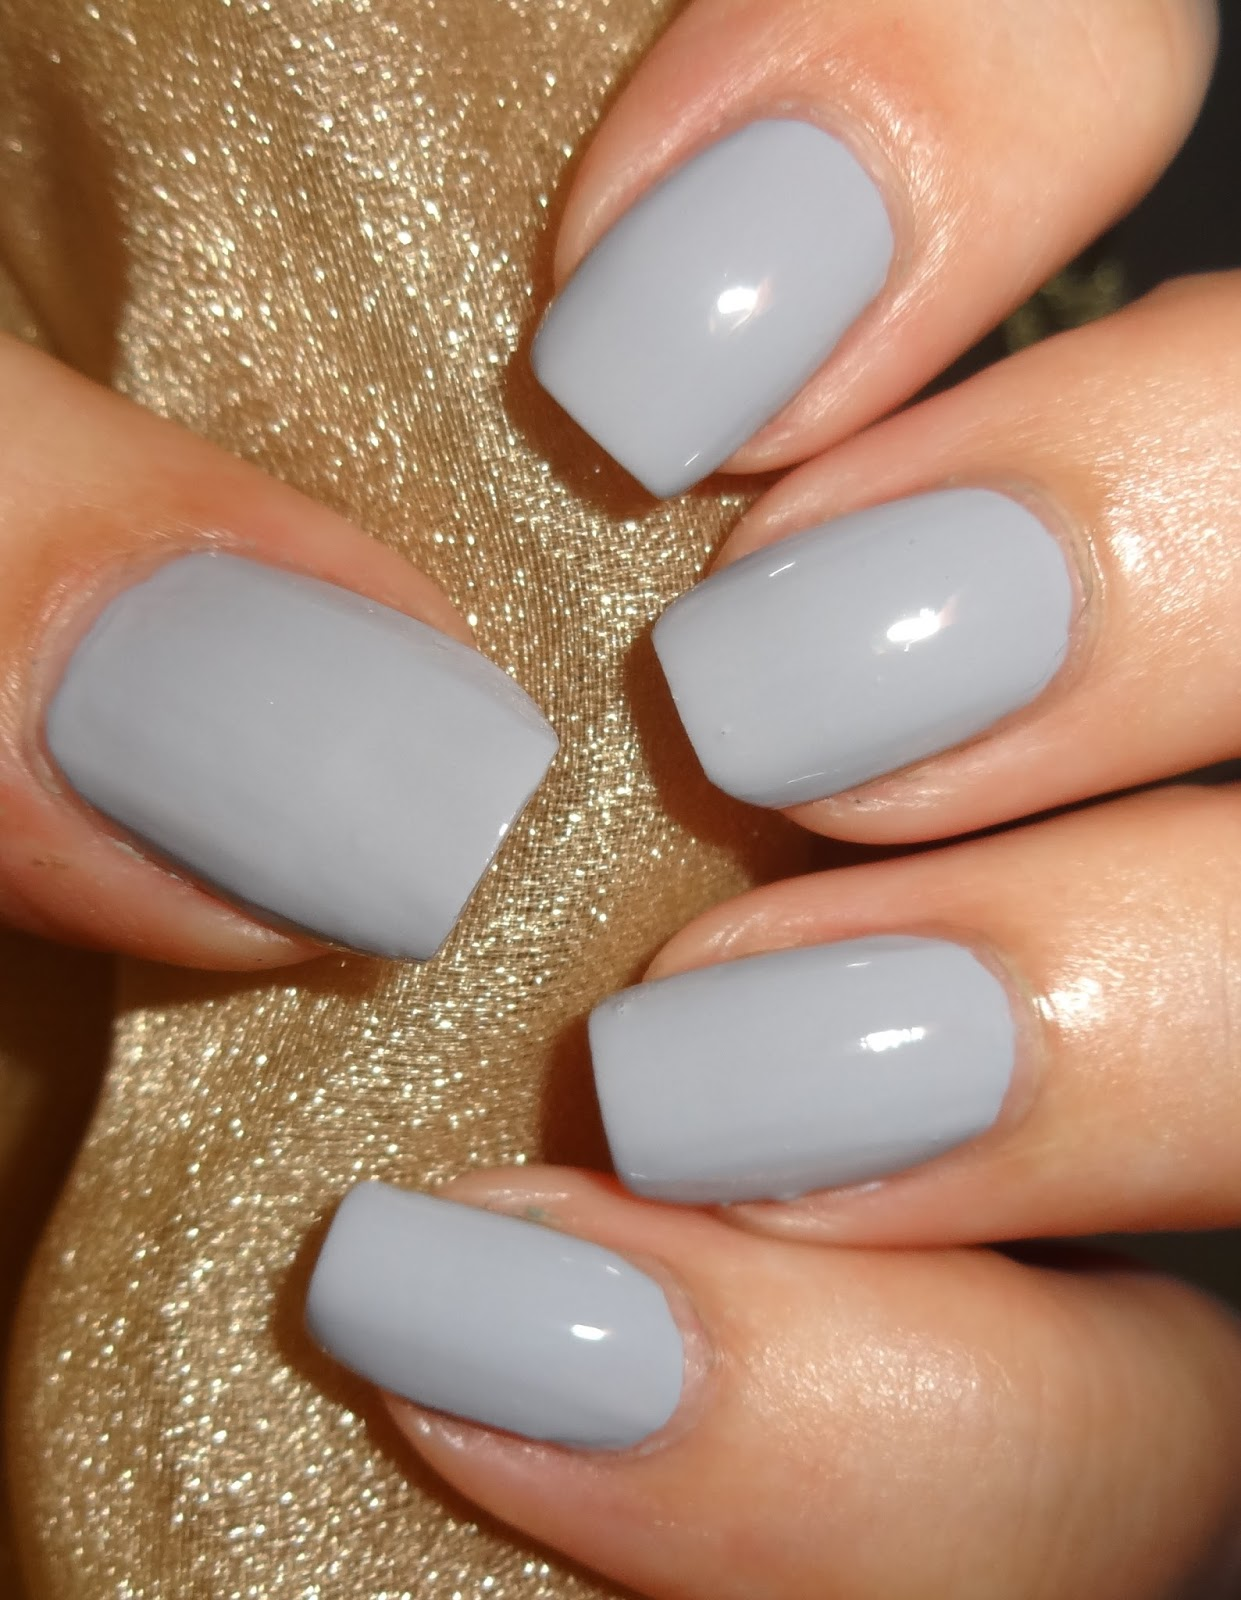 Nails Inc When Doves Cry (1)